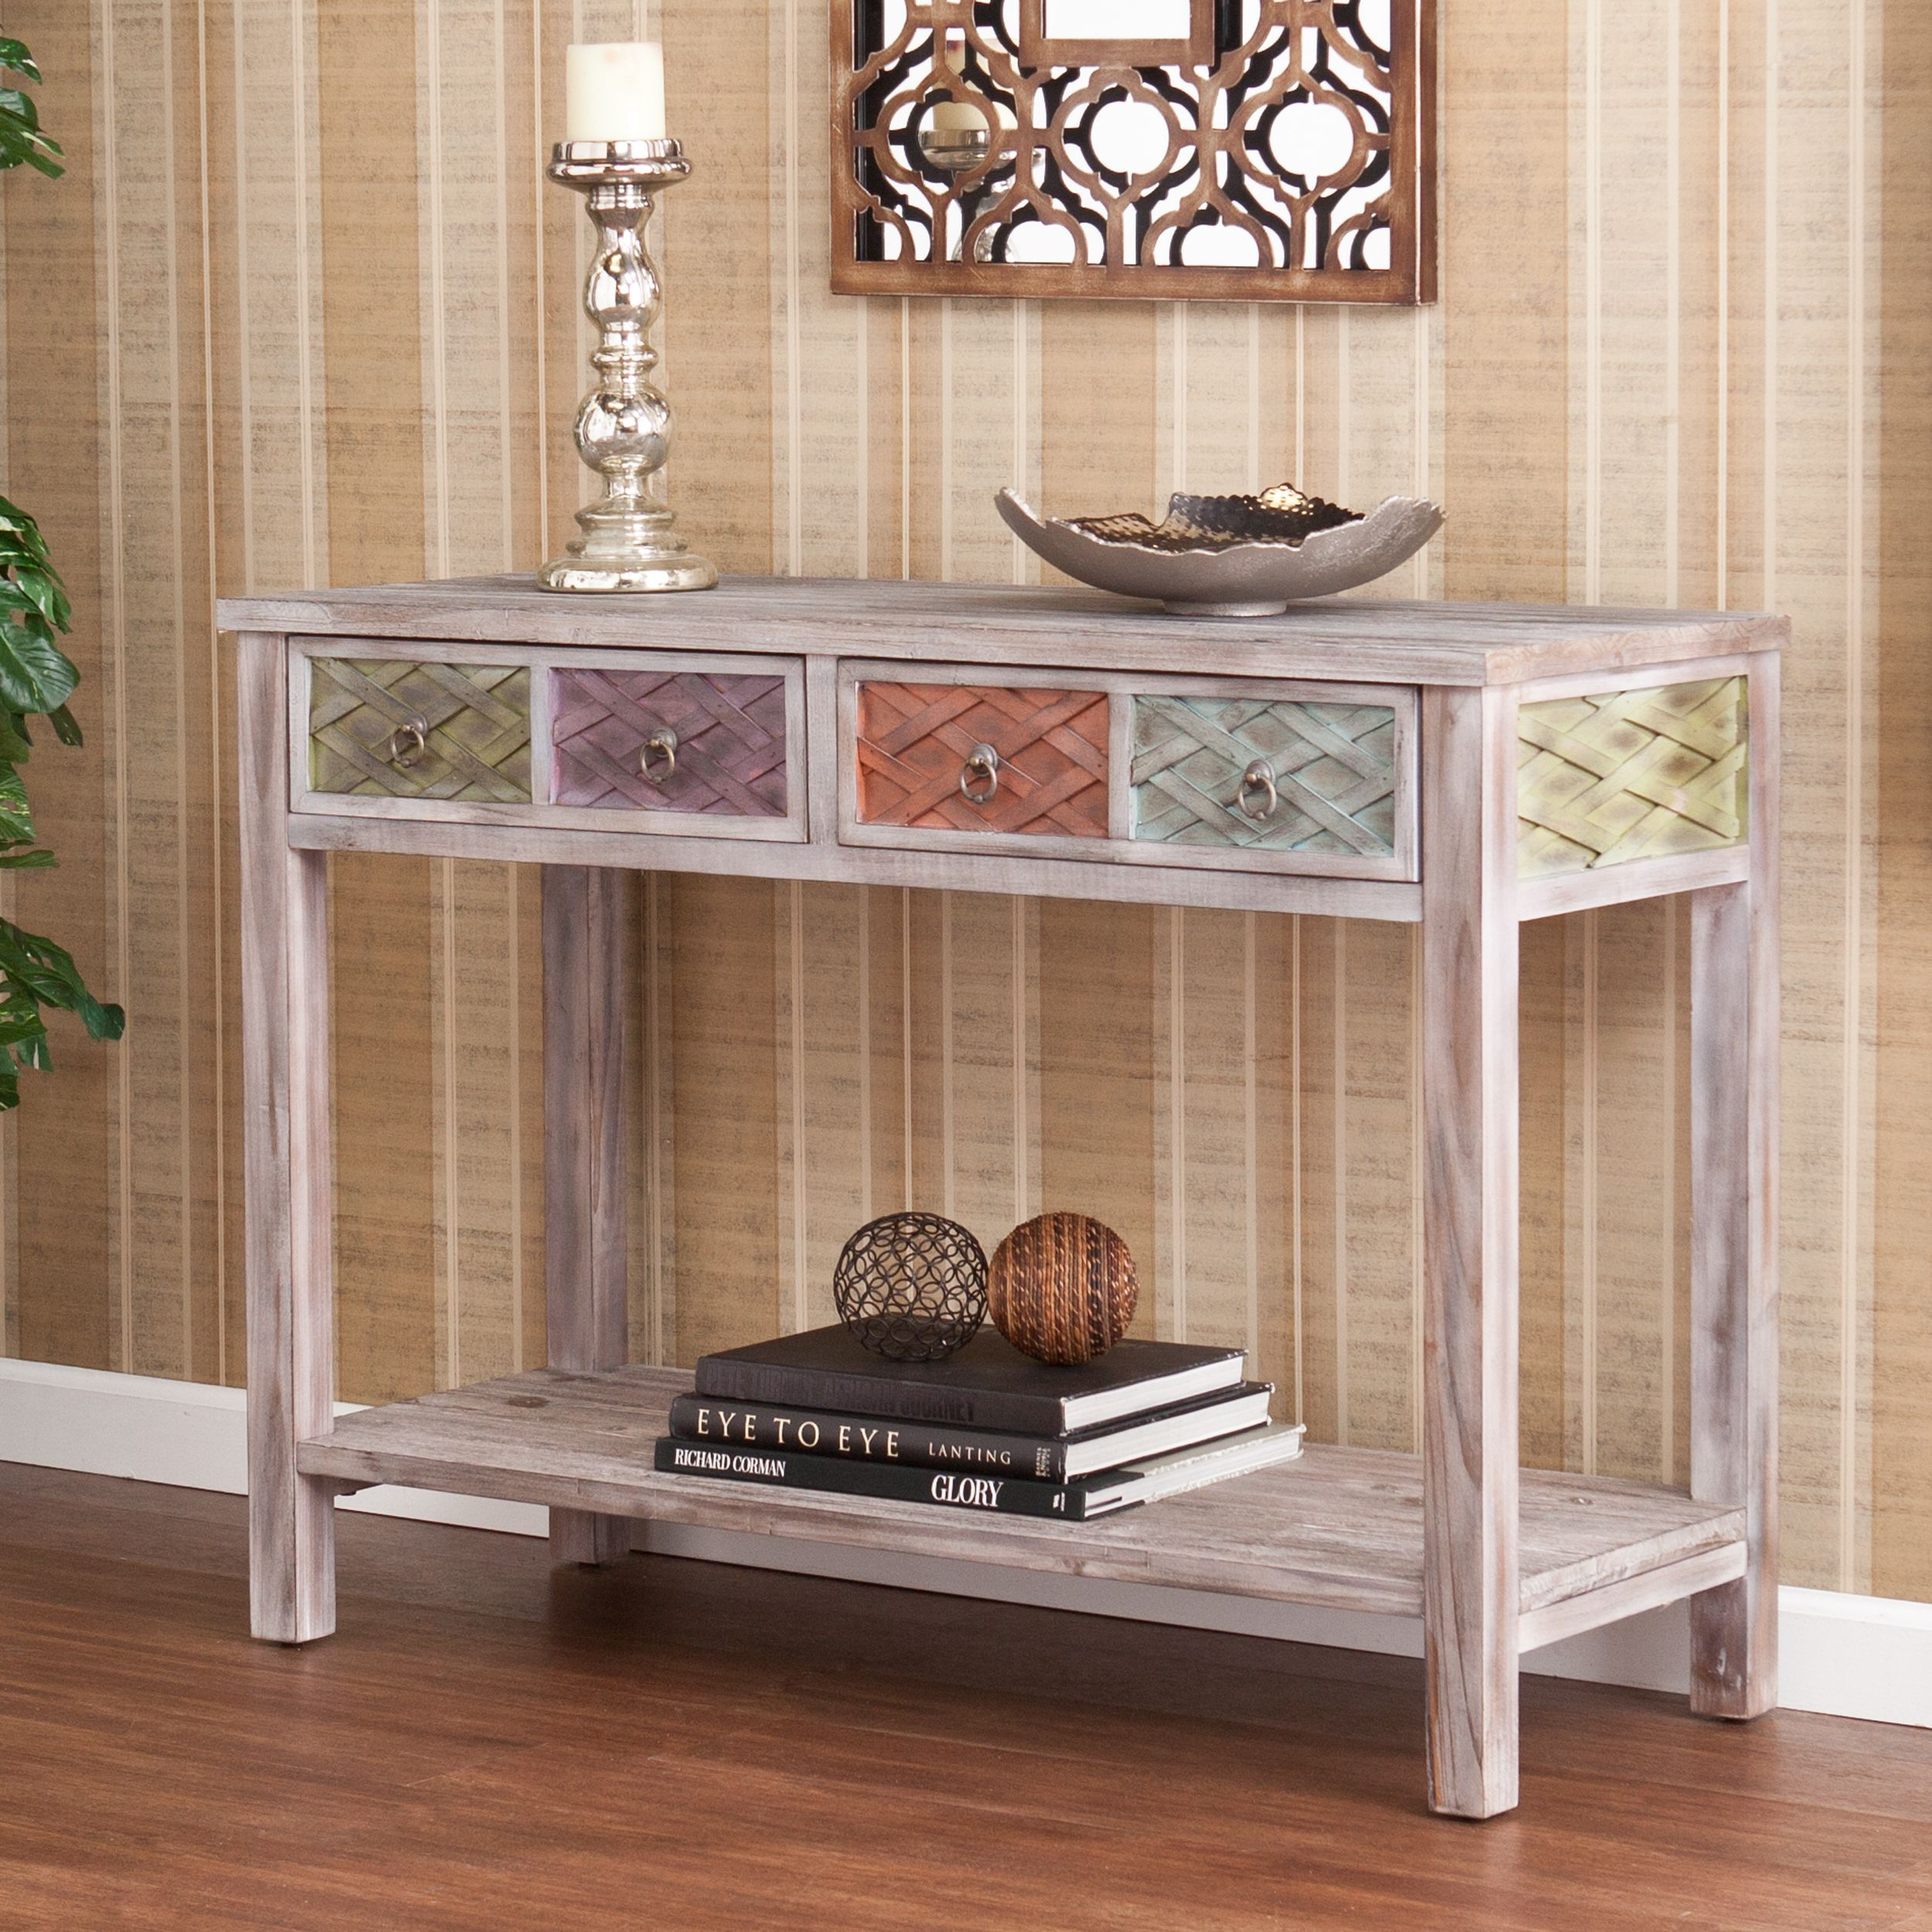 Buy harper blvd from overstock for everyday discount prices upton home lafond console sofa table overstock shopping great deals on upton home coffee sofa end tables geotapseo Images